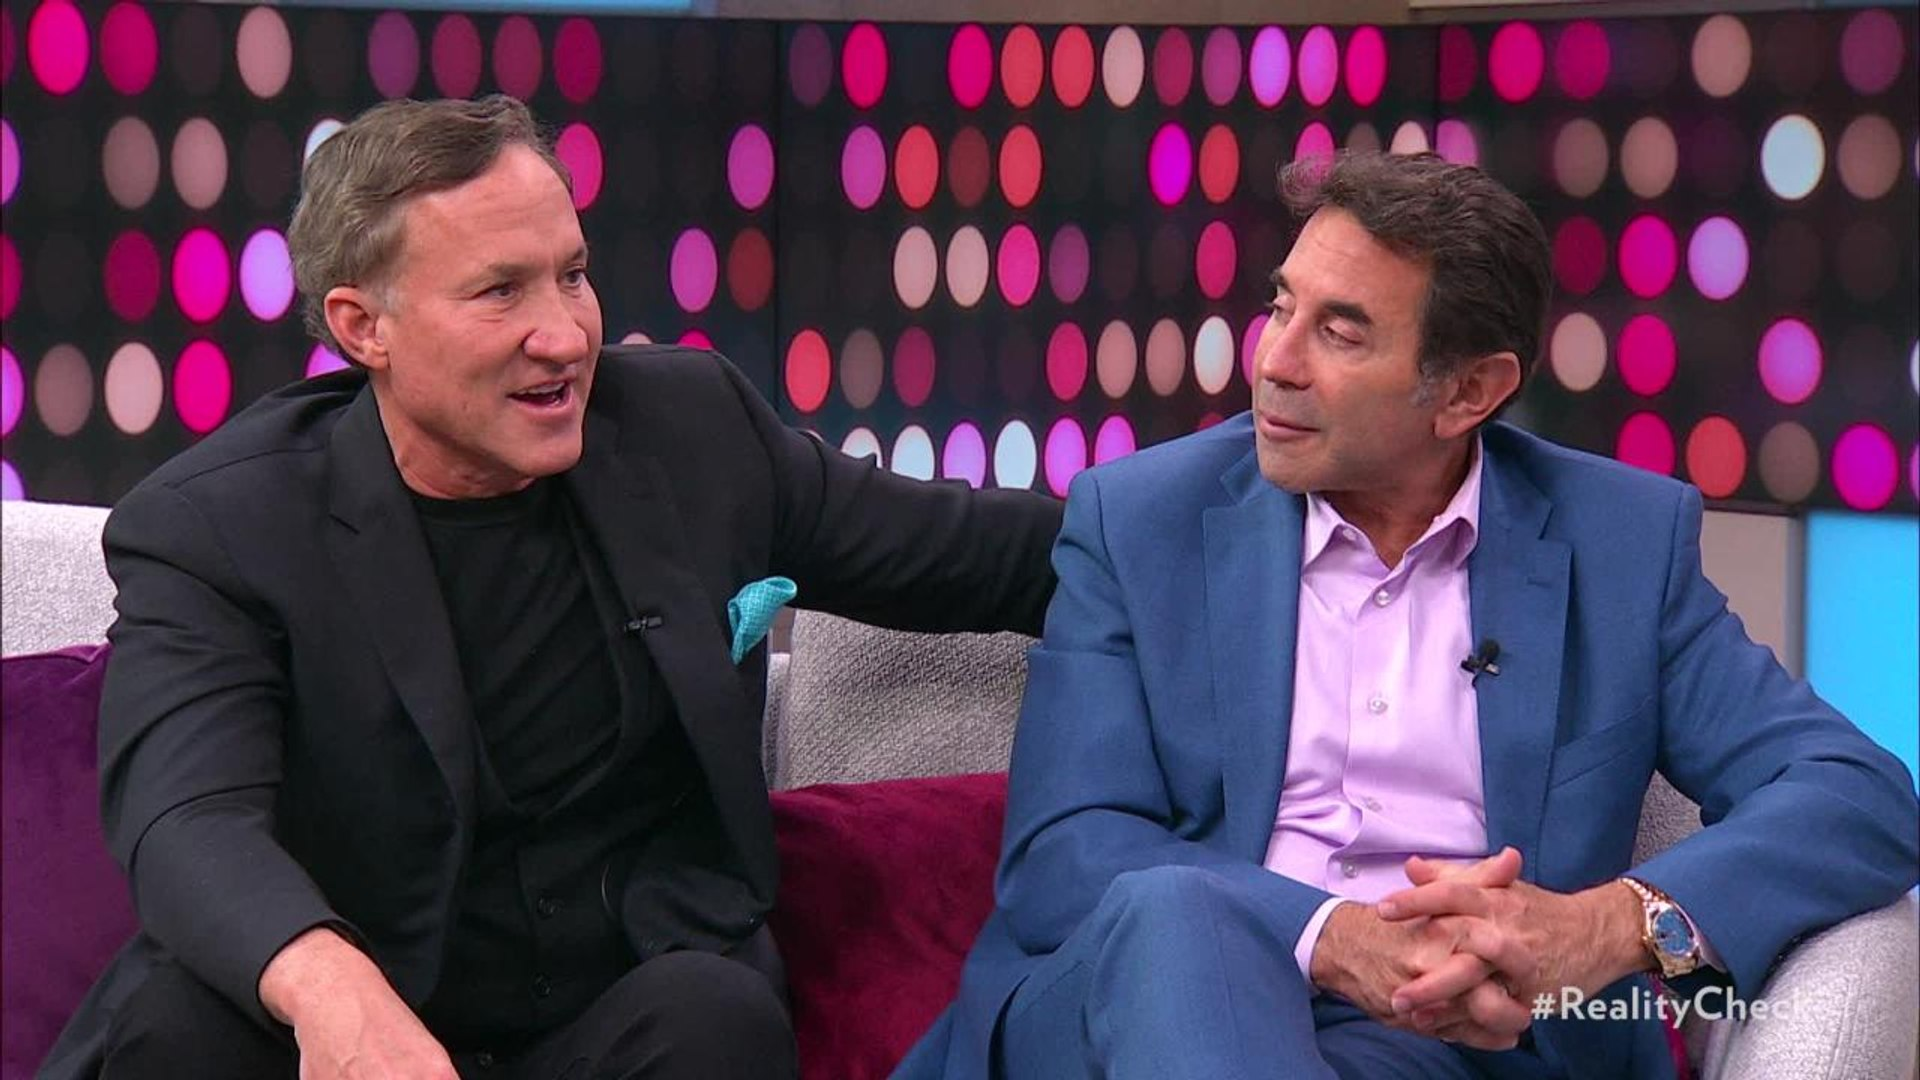 Dr. Paul Nassif and Dr. Terry Dubrow Tease This 'Season of Traffic Accidents' on 'Bot